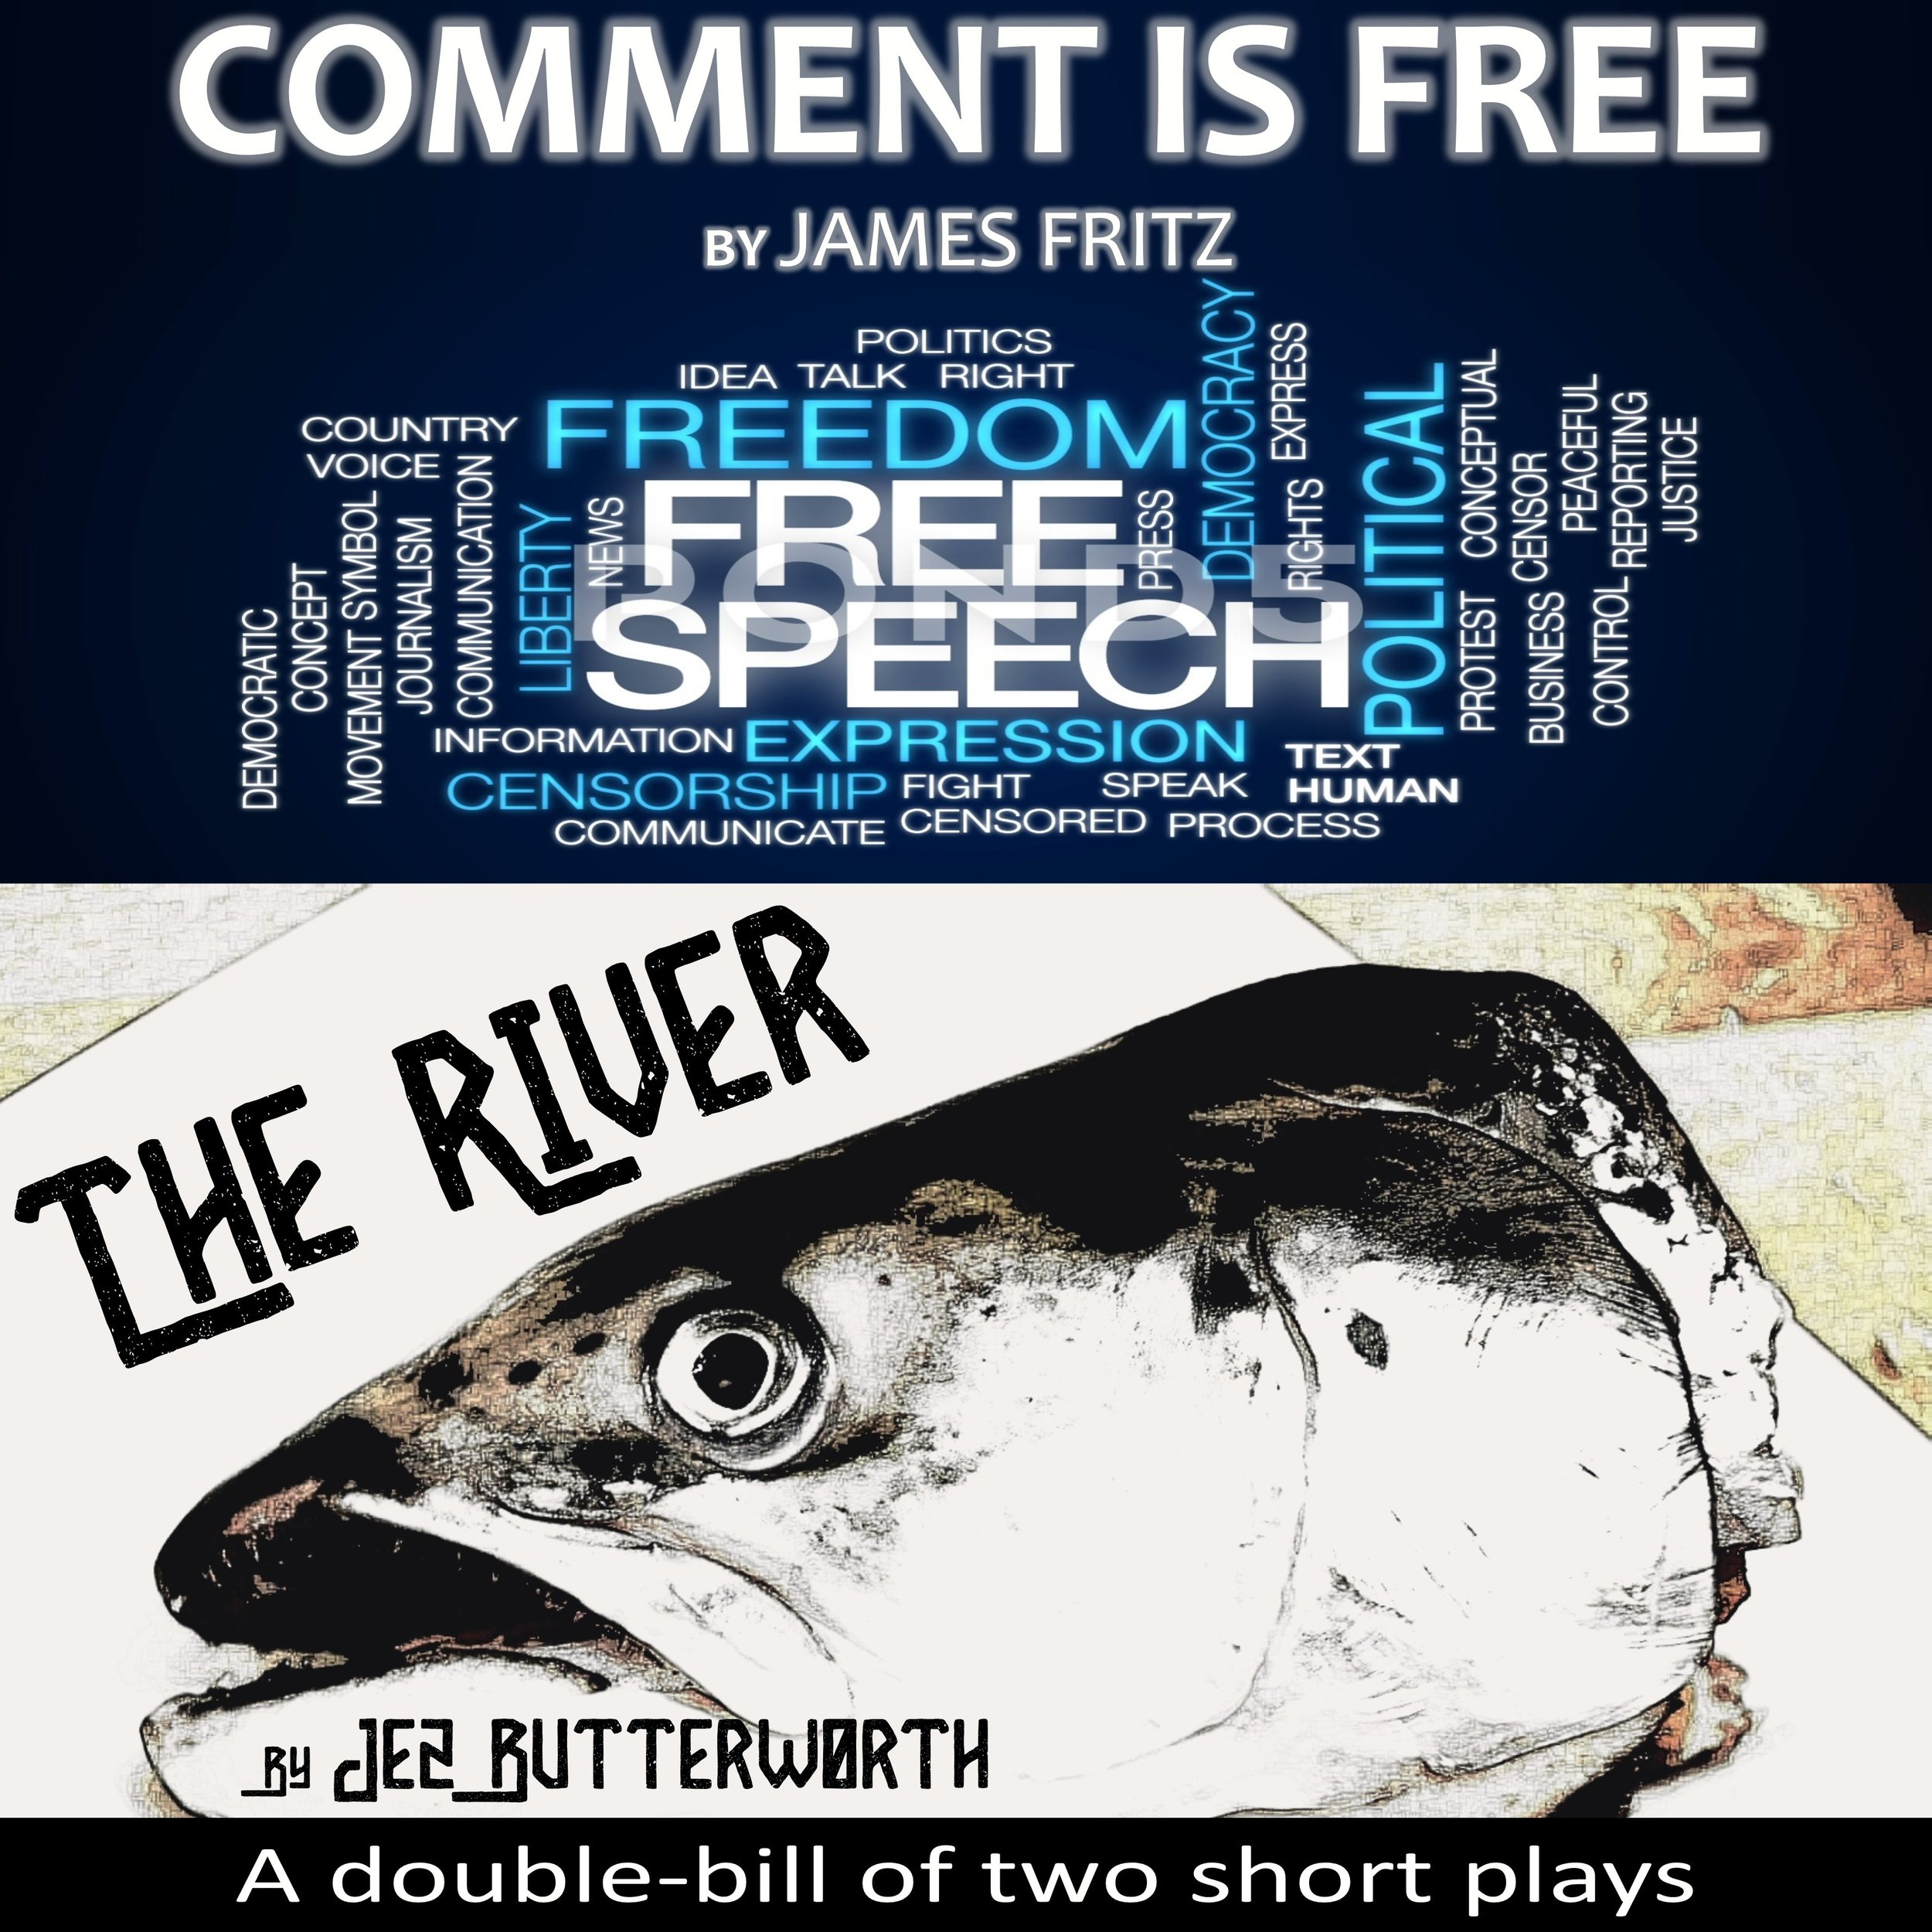 comment is free and the river web image.jpg